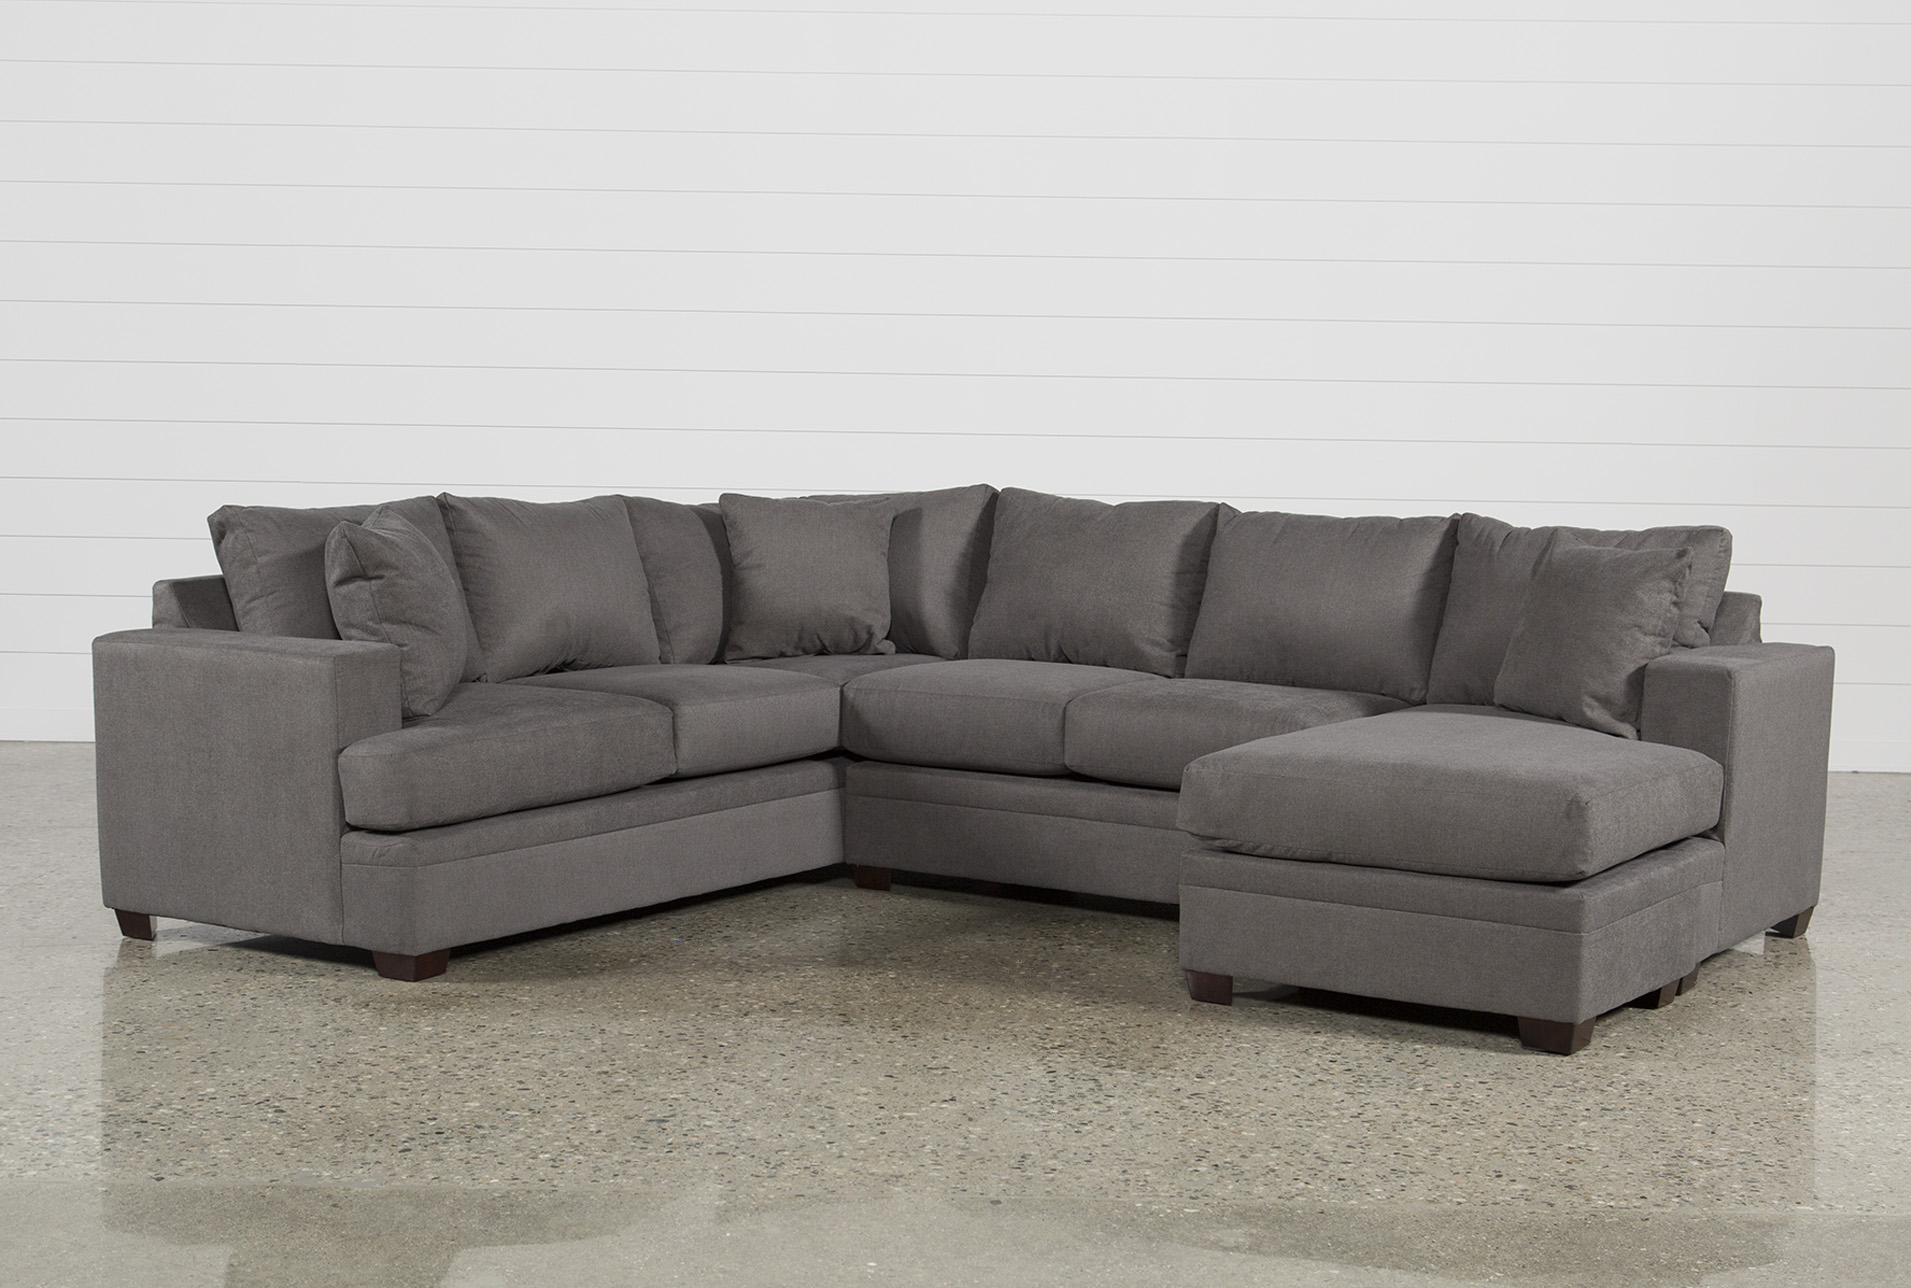 Grey Couch Adds Warmth And   Fashion To Your Home